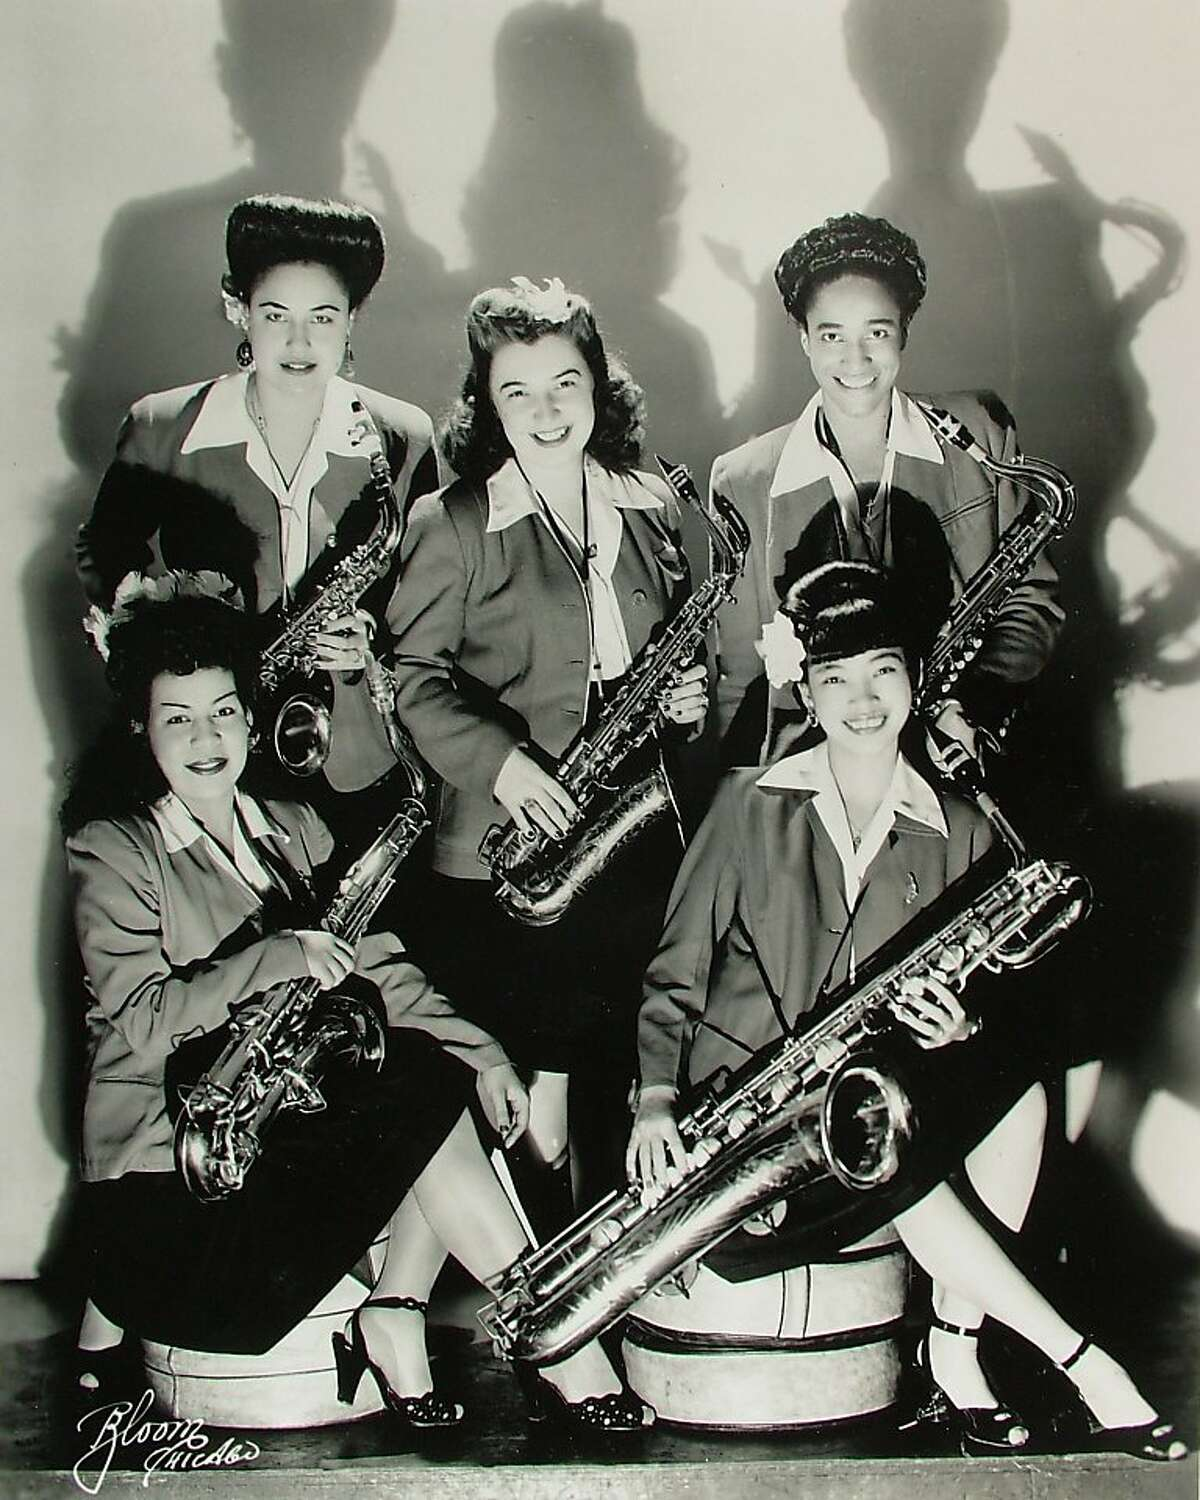 This is the racially-mixed saxophone section of the International Sweethearts of Rhythm, the all-female jazz orchestra that came to prominence around World War II and is featured in the documentary